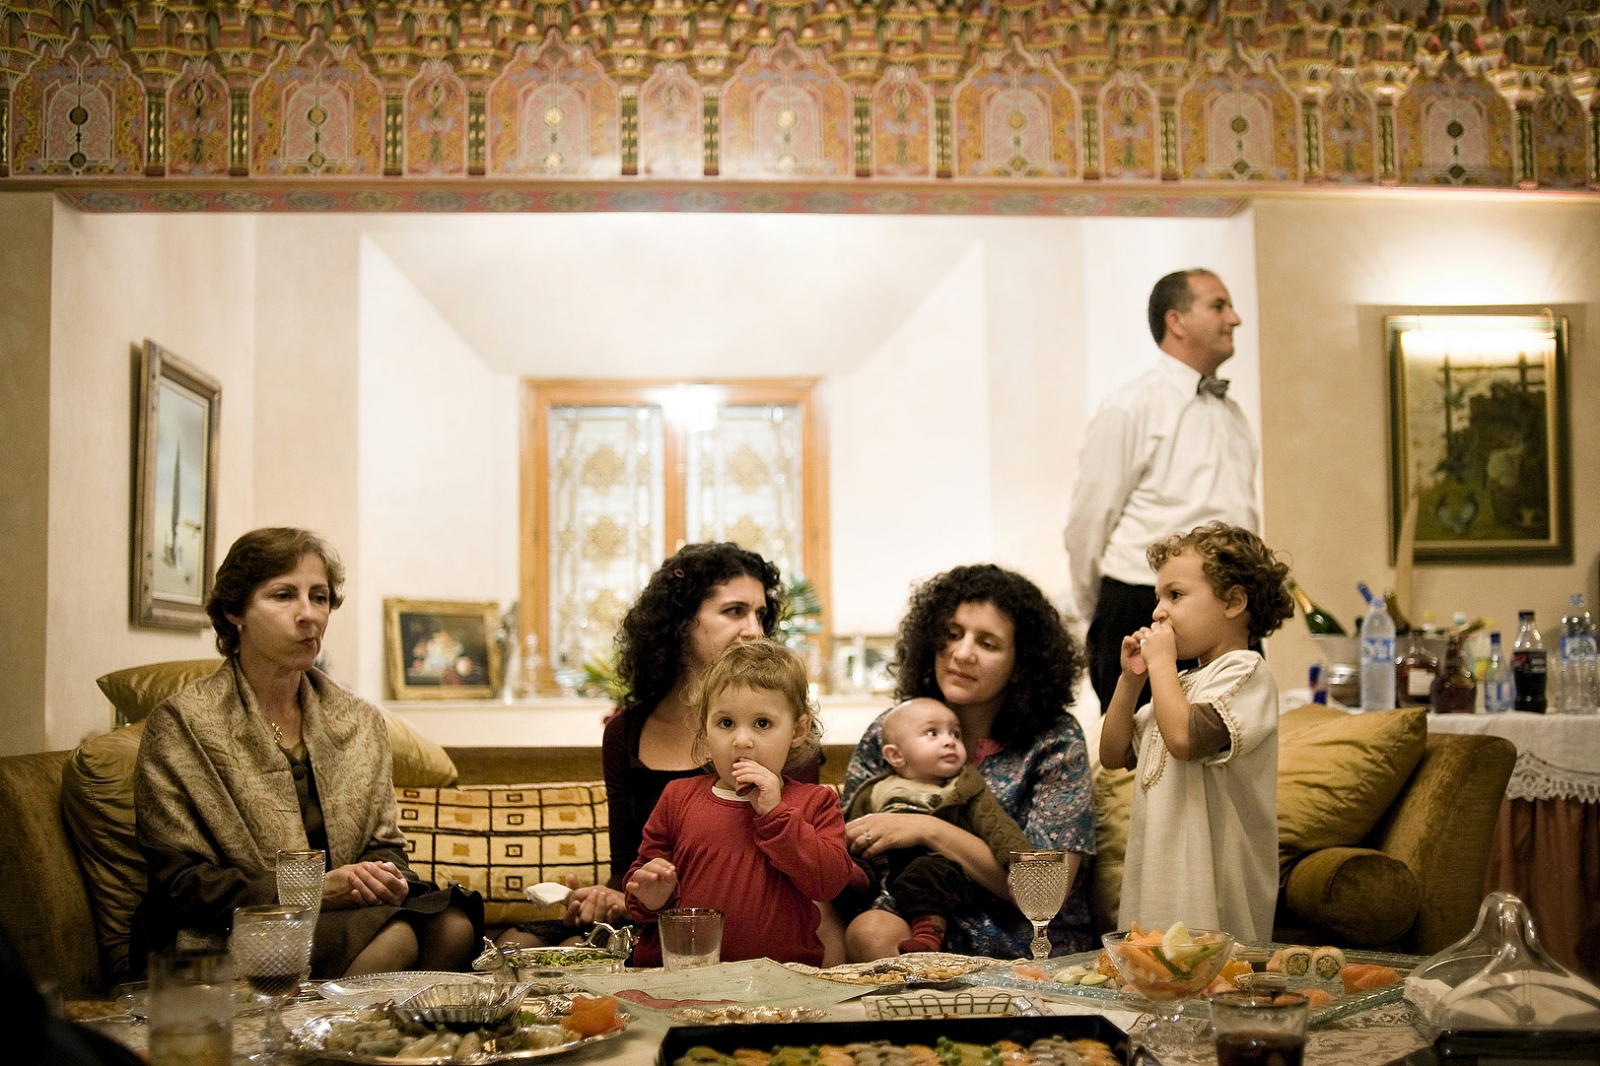 2010 - A wealthy Moroccan Jewish family holds a party for the Mamouna festival in Casablanca Morocco. The Mamouna is originally a Moroccan Jewish holiday when Jews opened their doors to their Muslim and Jewish neighbours to share in the festivities.